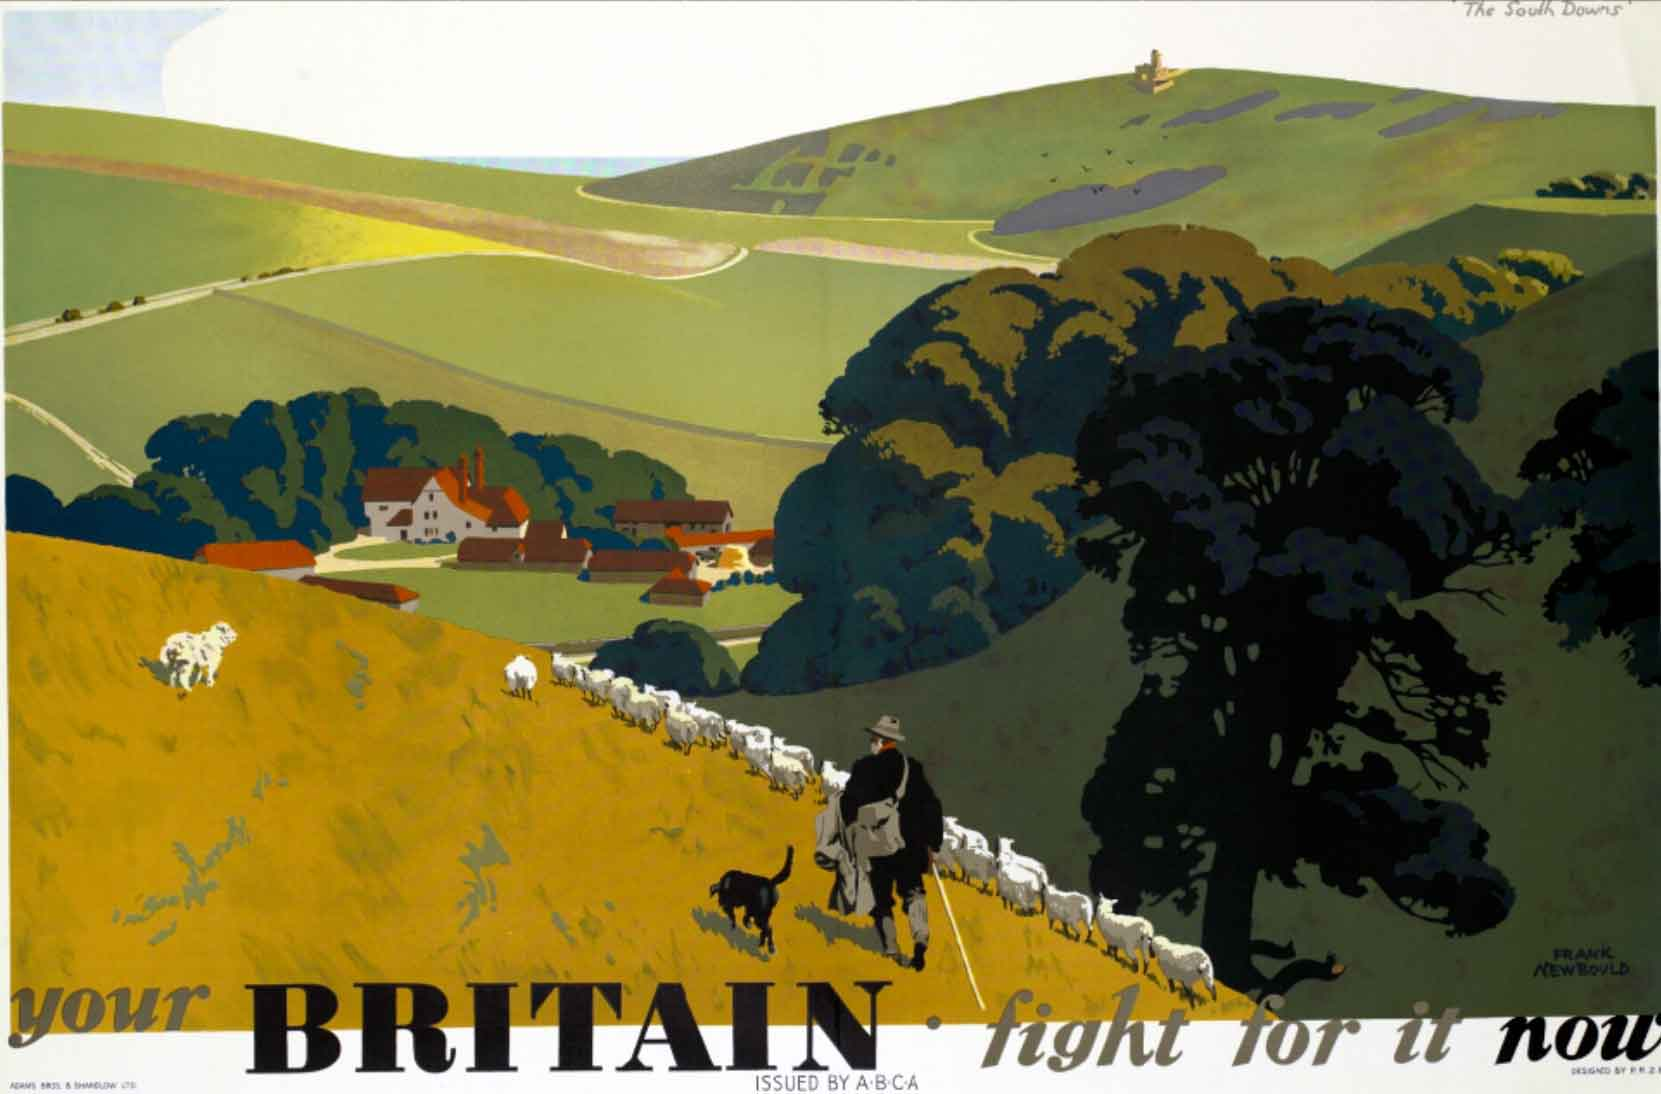 From the famous series of four posters by Newbould. An example of how an inter-war travel poster style was used unchanged during the war to arouse patriotic feelings for an idealised pastoral Britain, defined by the landscape of southern England. Newbould was a noted designer of travel posters. In 1942 he joined the War Office as an assistant designer to Abram Games.